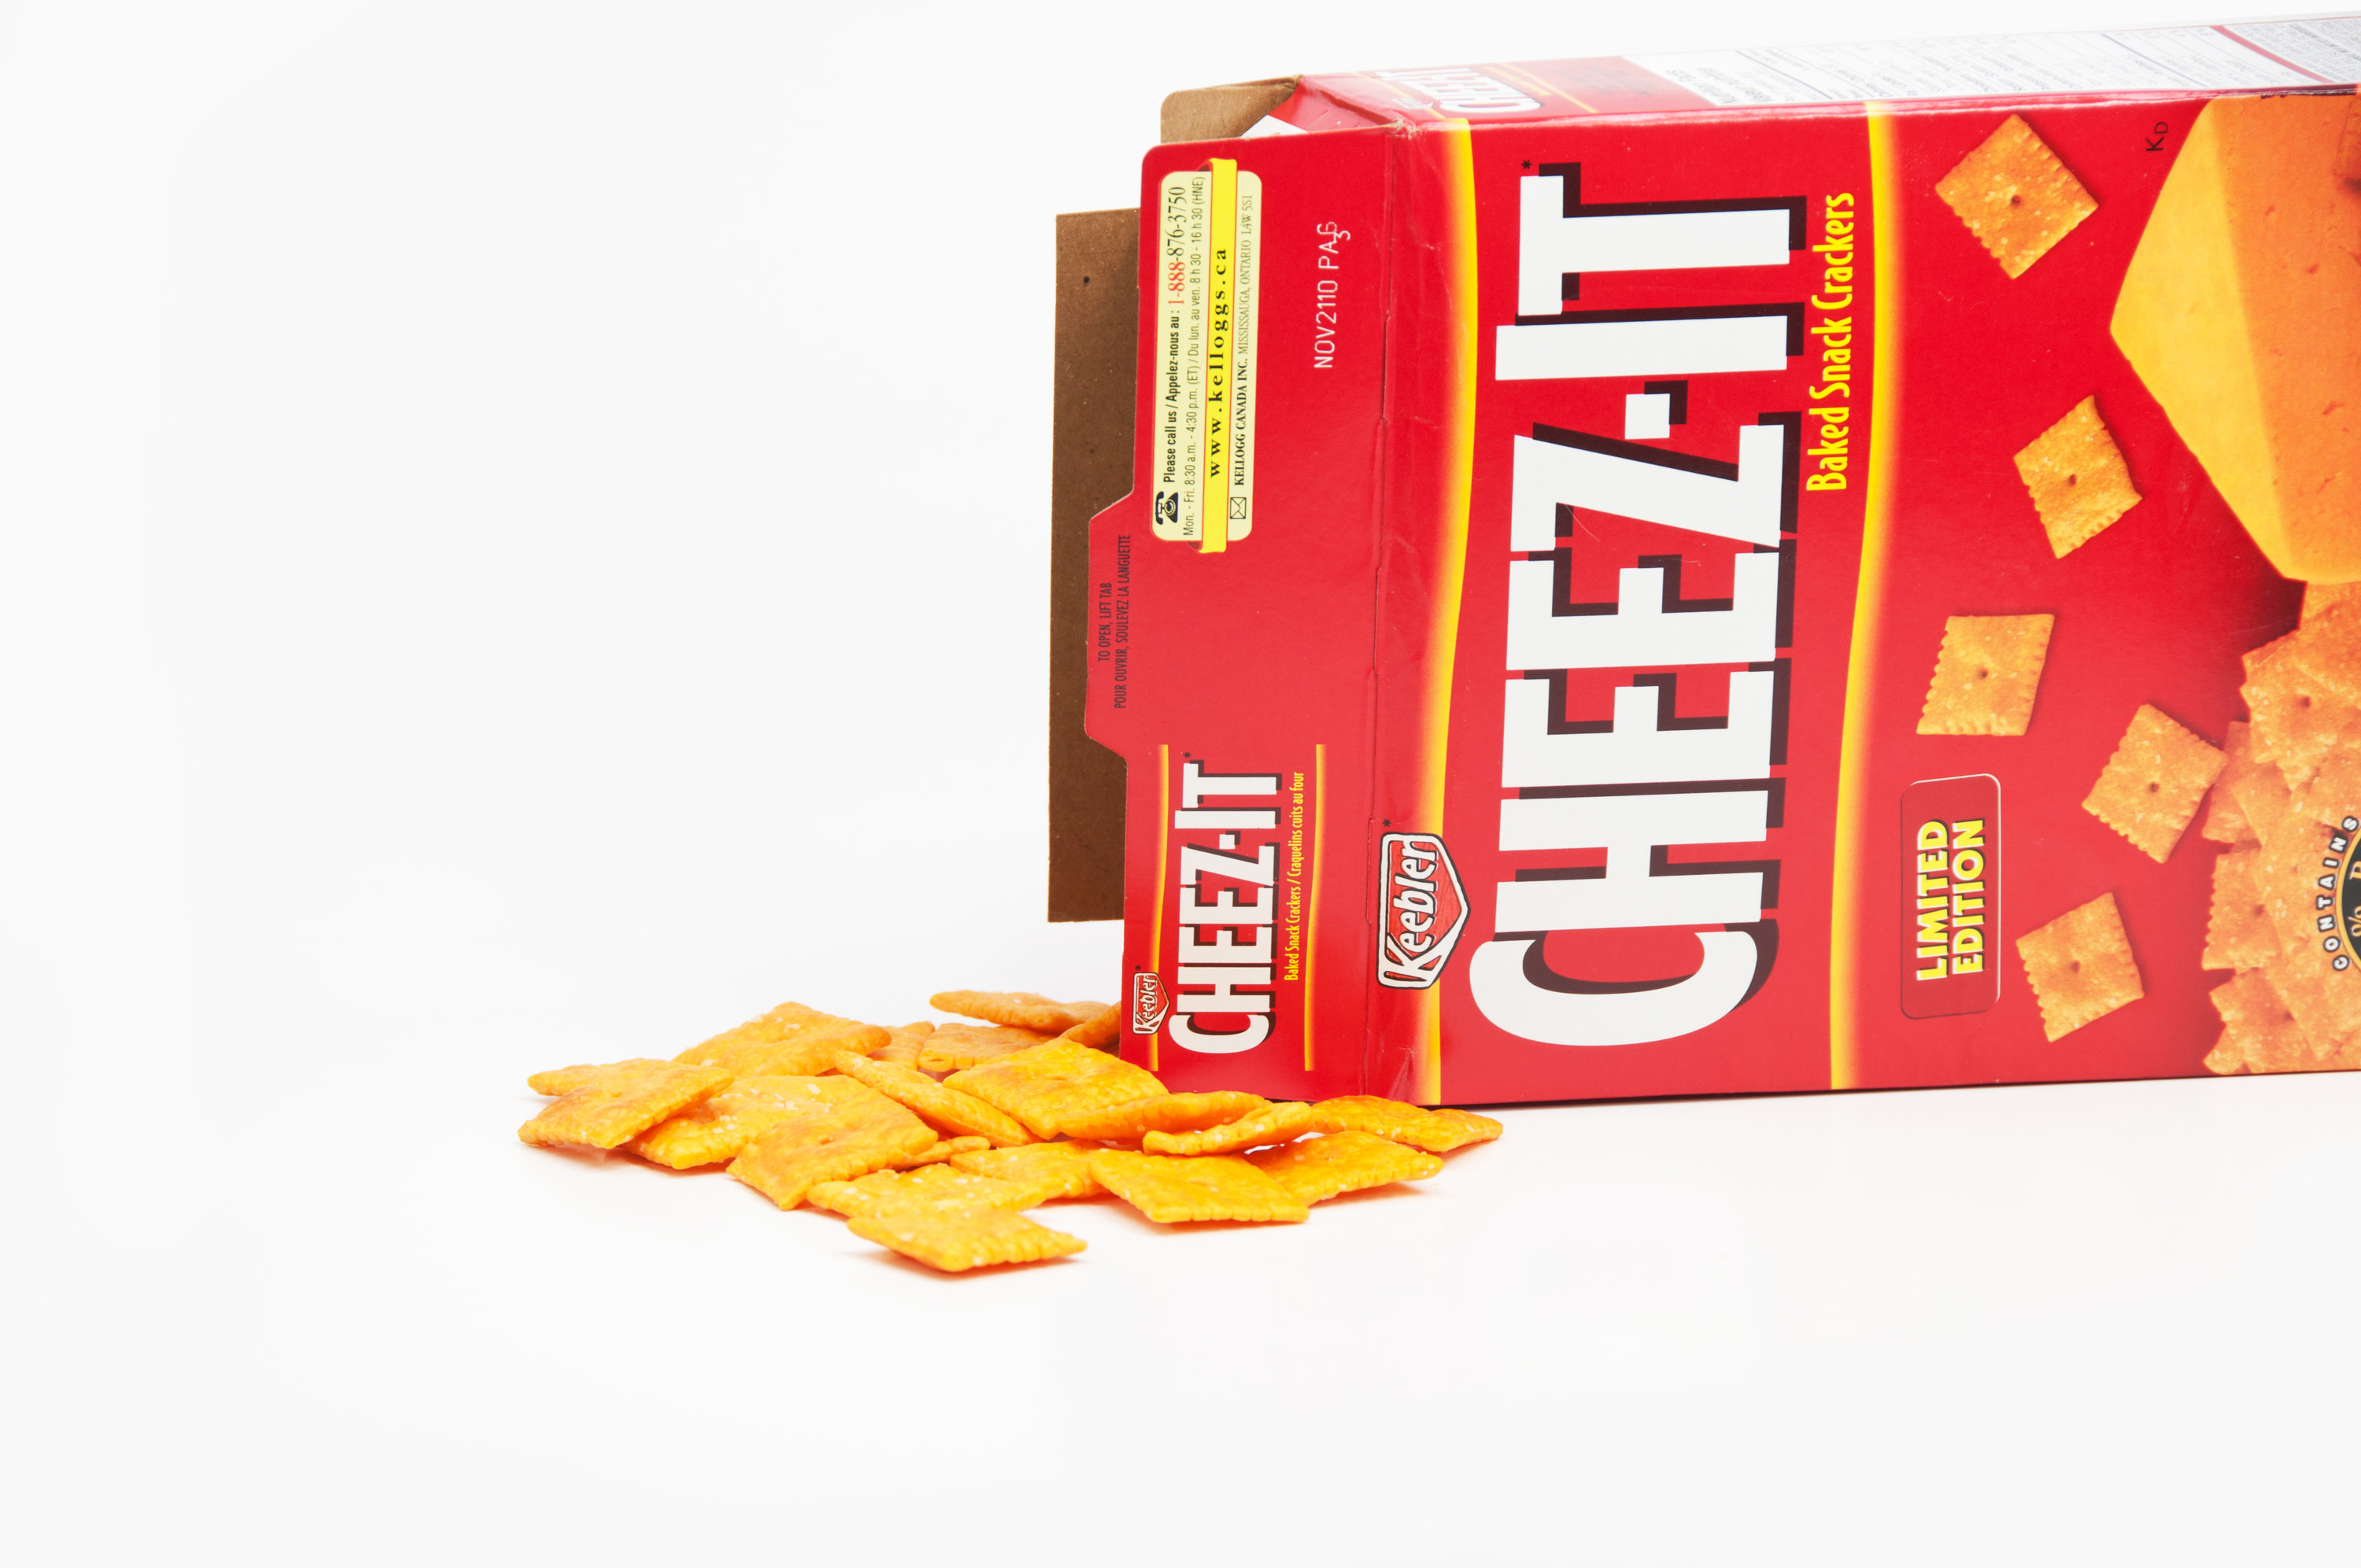 A box of Cheez-Its